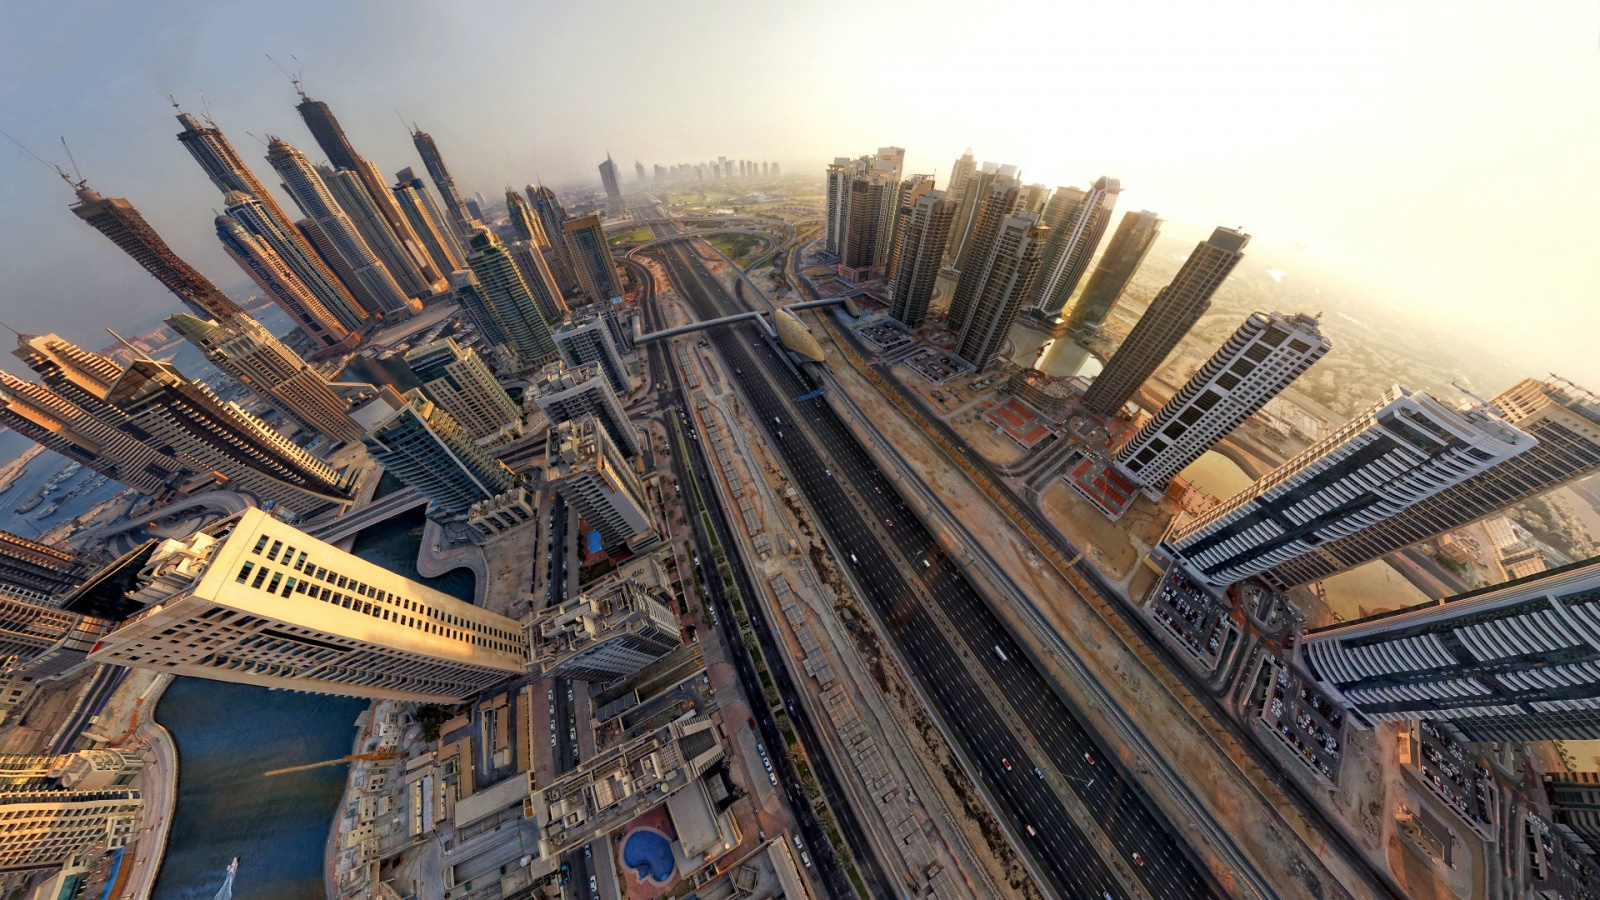 dubai fisheye photography wallpaper 50211